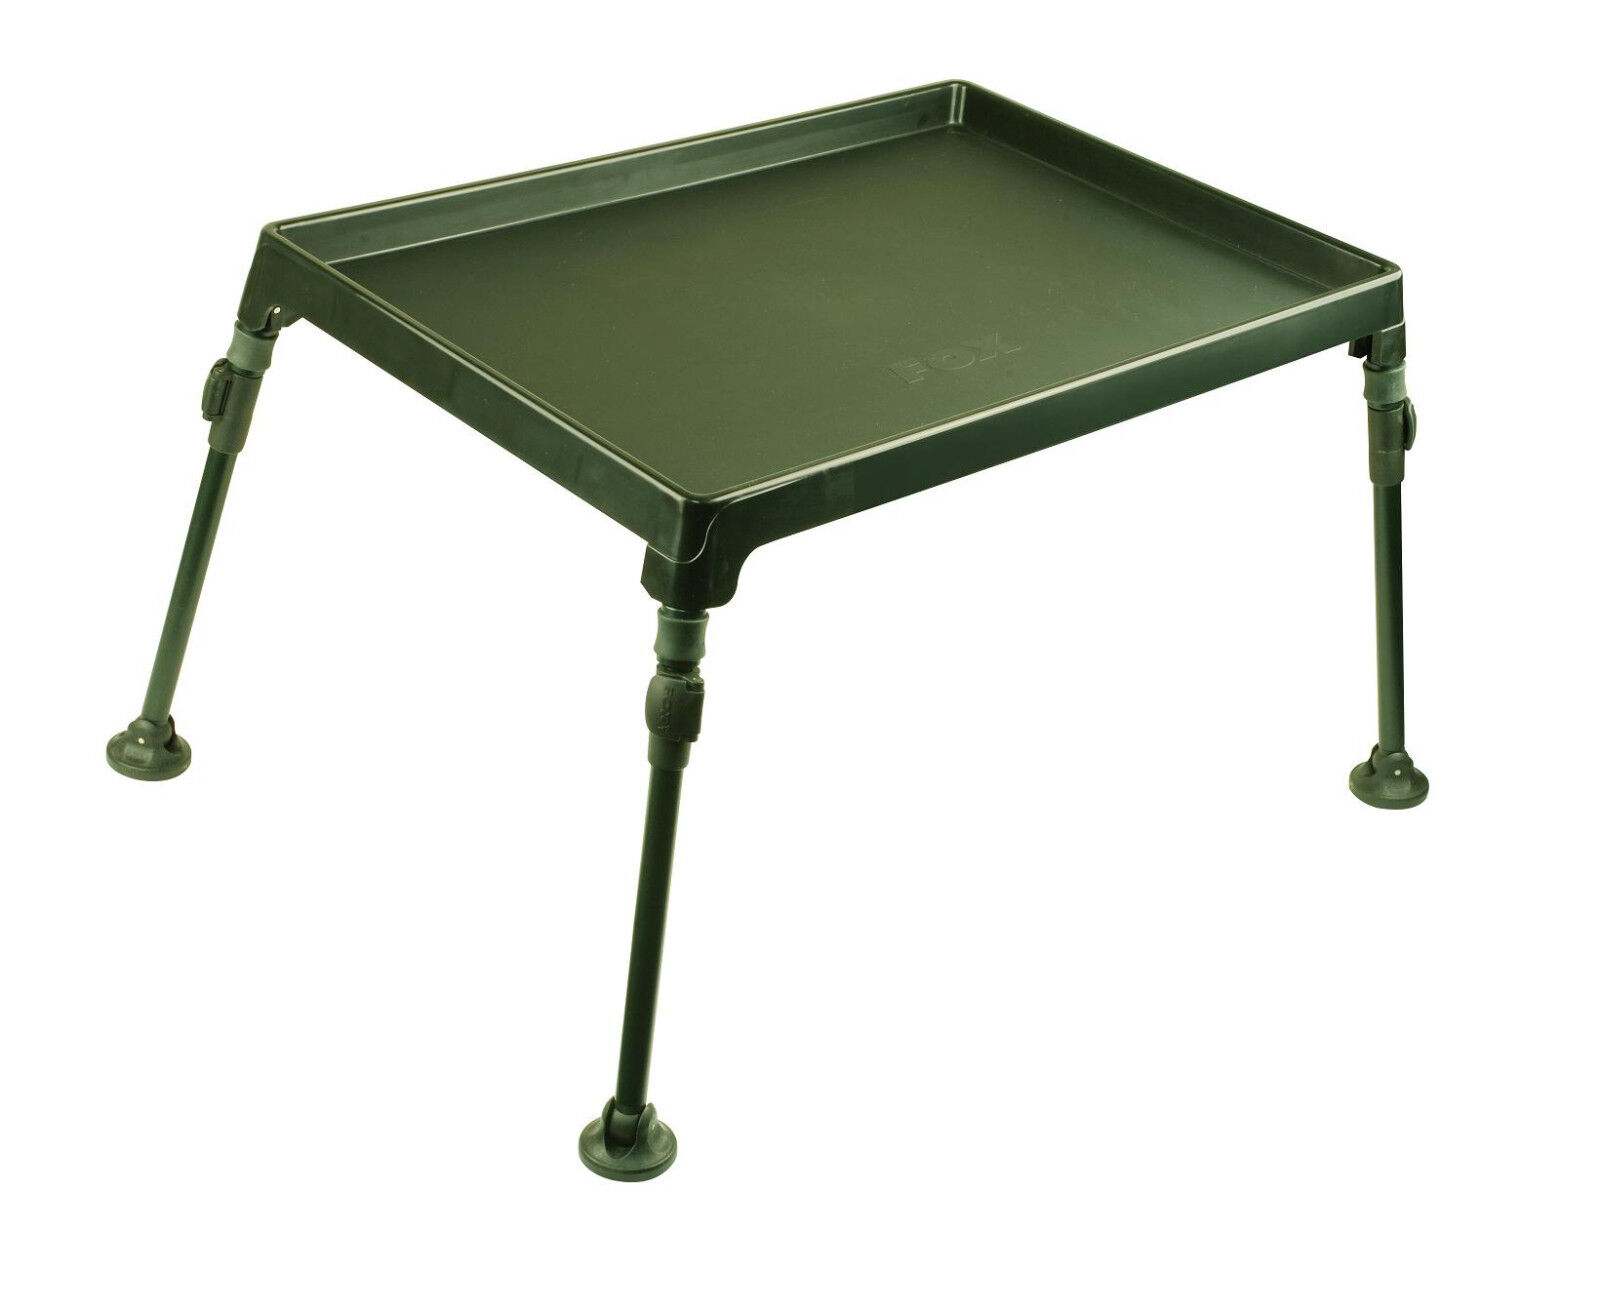 Fox Session Table Bivvy Table CAC187  Bivvytable Tisch Angeltisch Zelttisch  buy 100% authentic quality